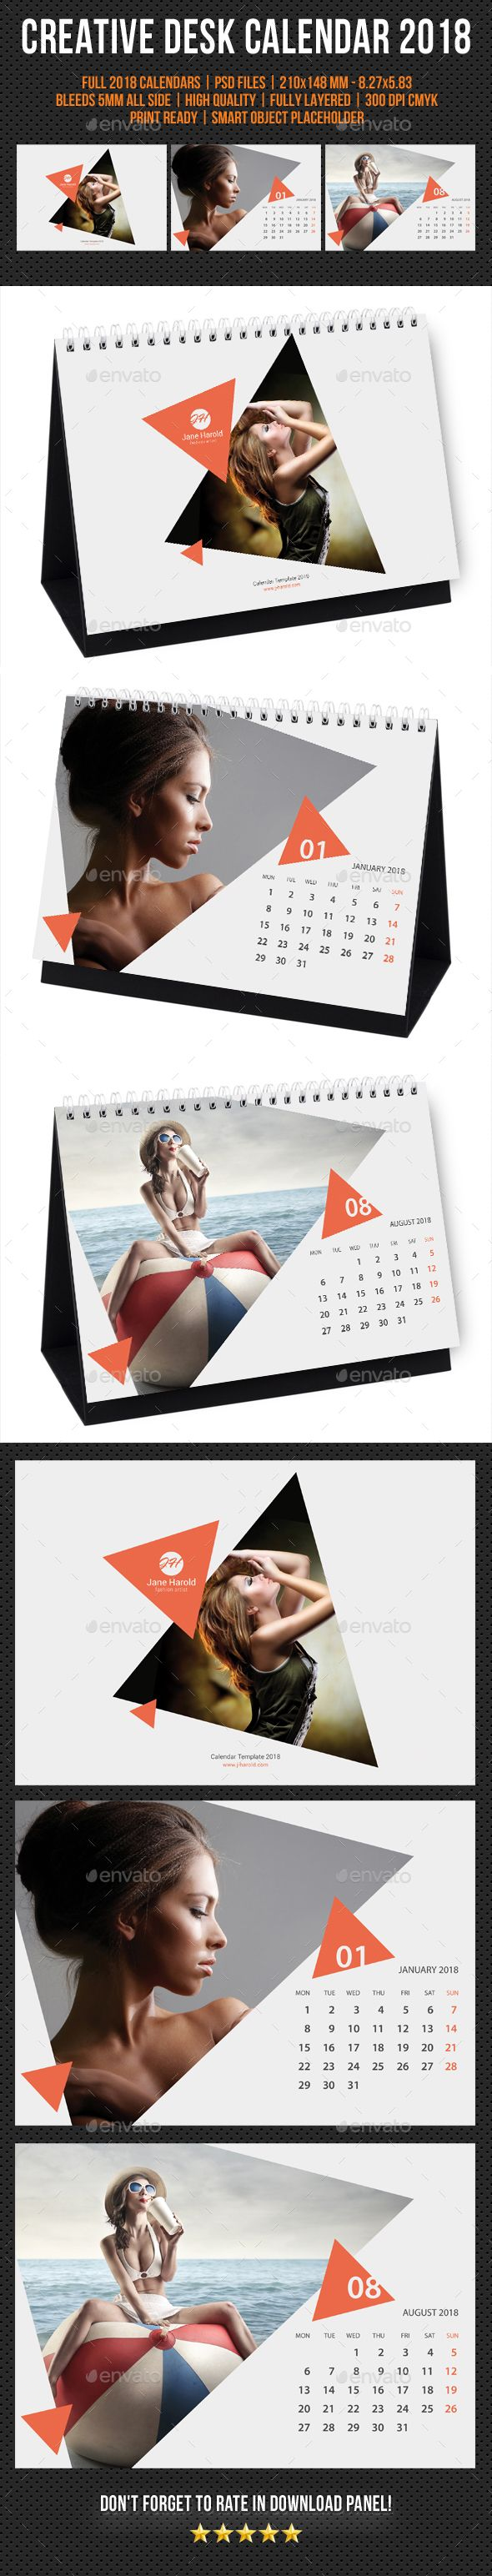 Creative Desk Calendar 2018 Template PSD